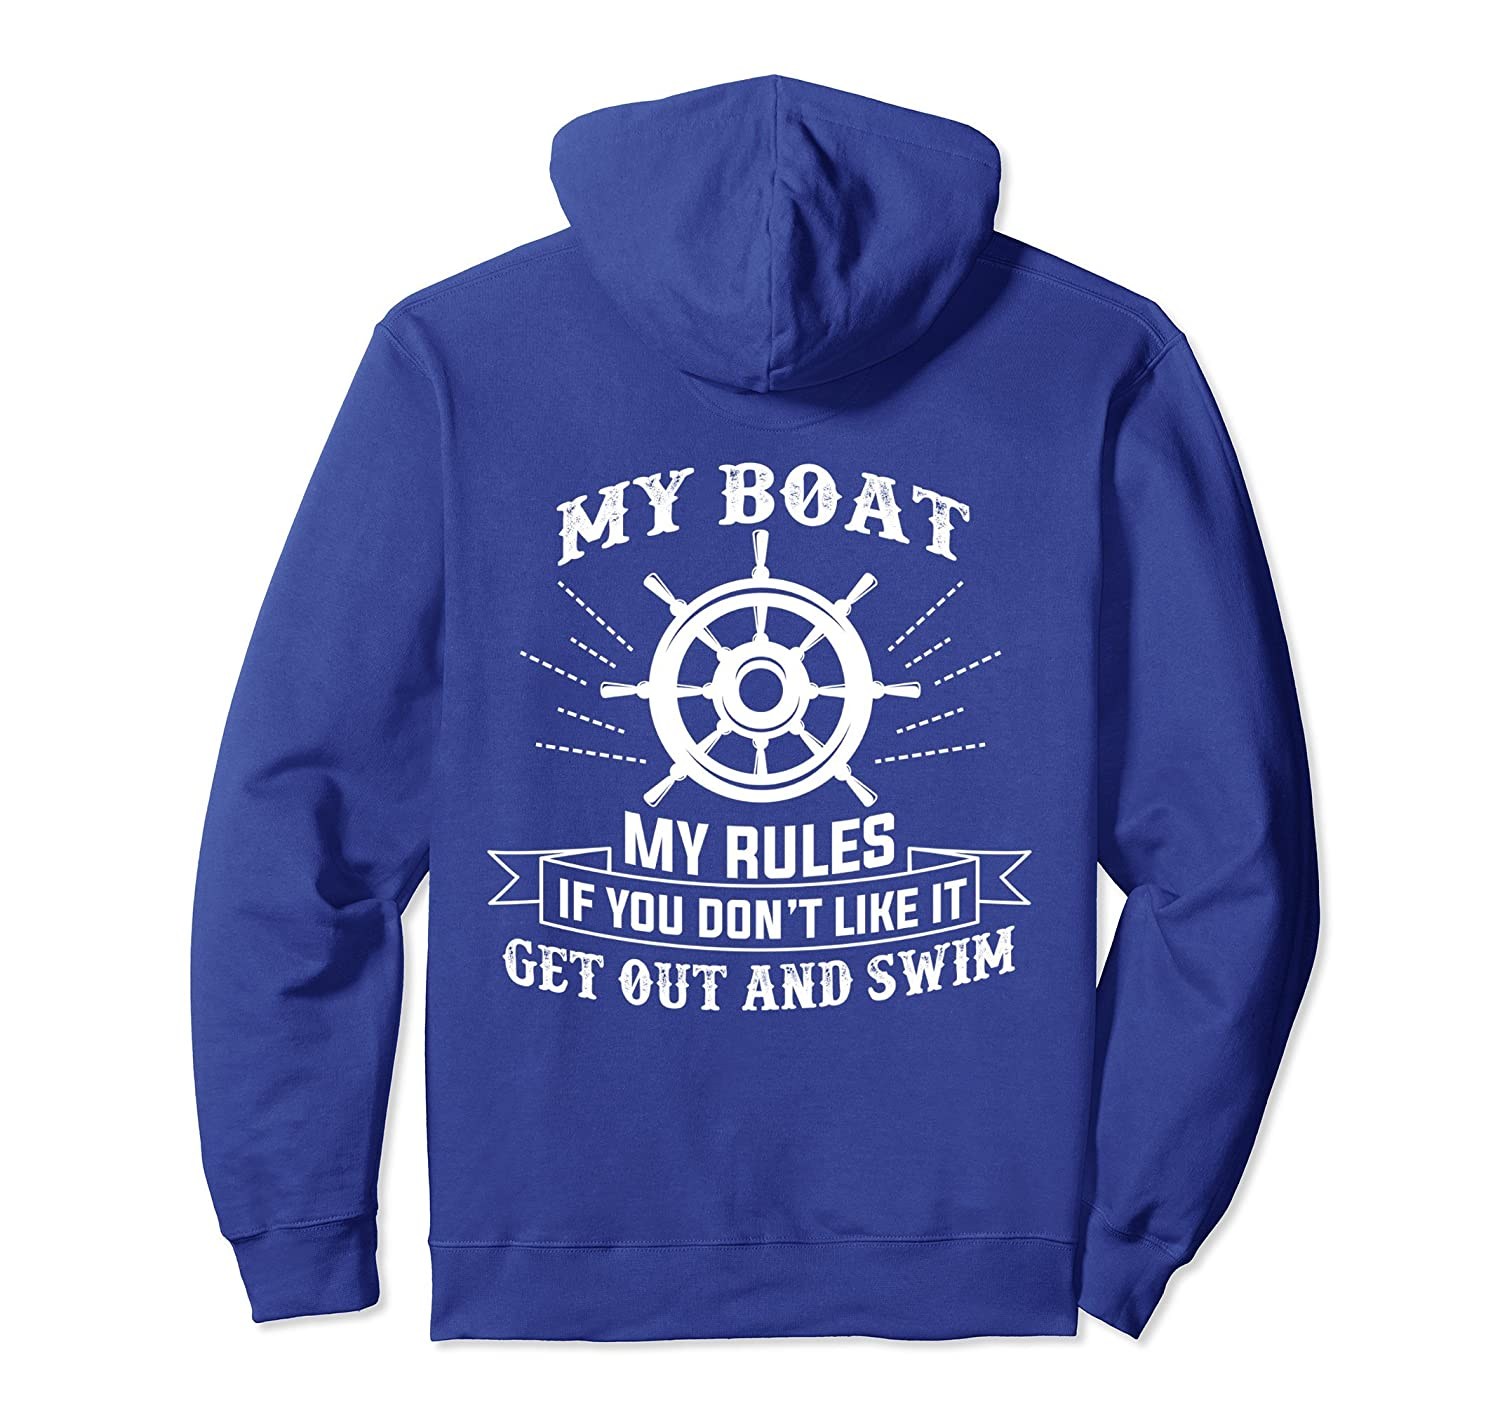 Boating Hoodie For Sea Captains And Fisherman-alottee gift